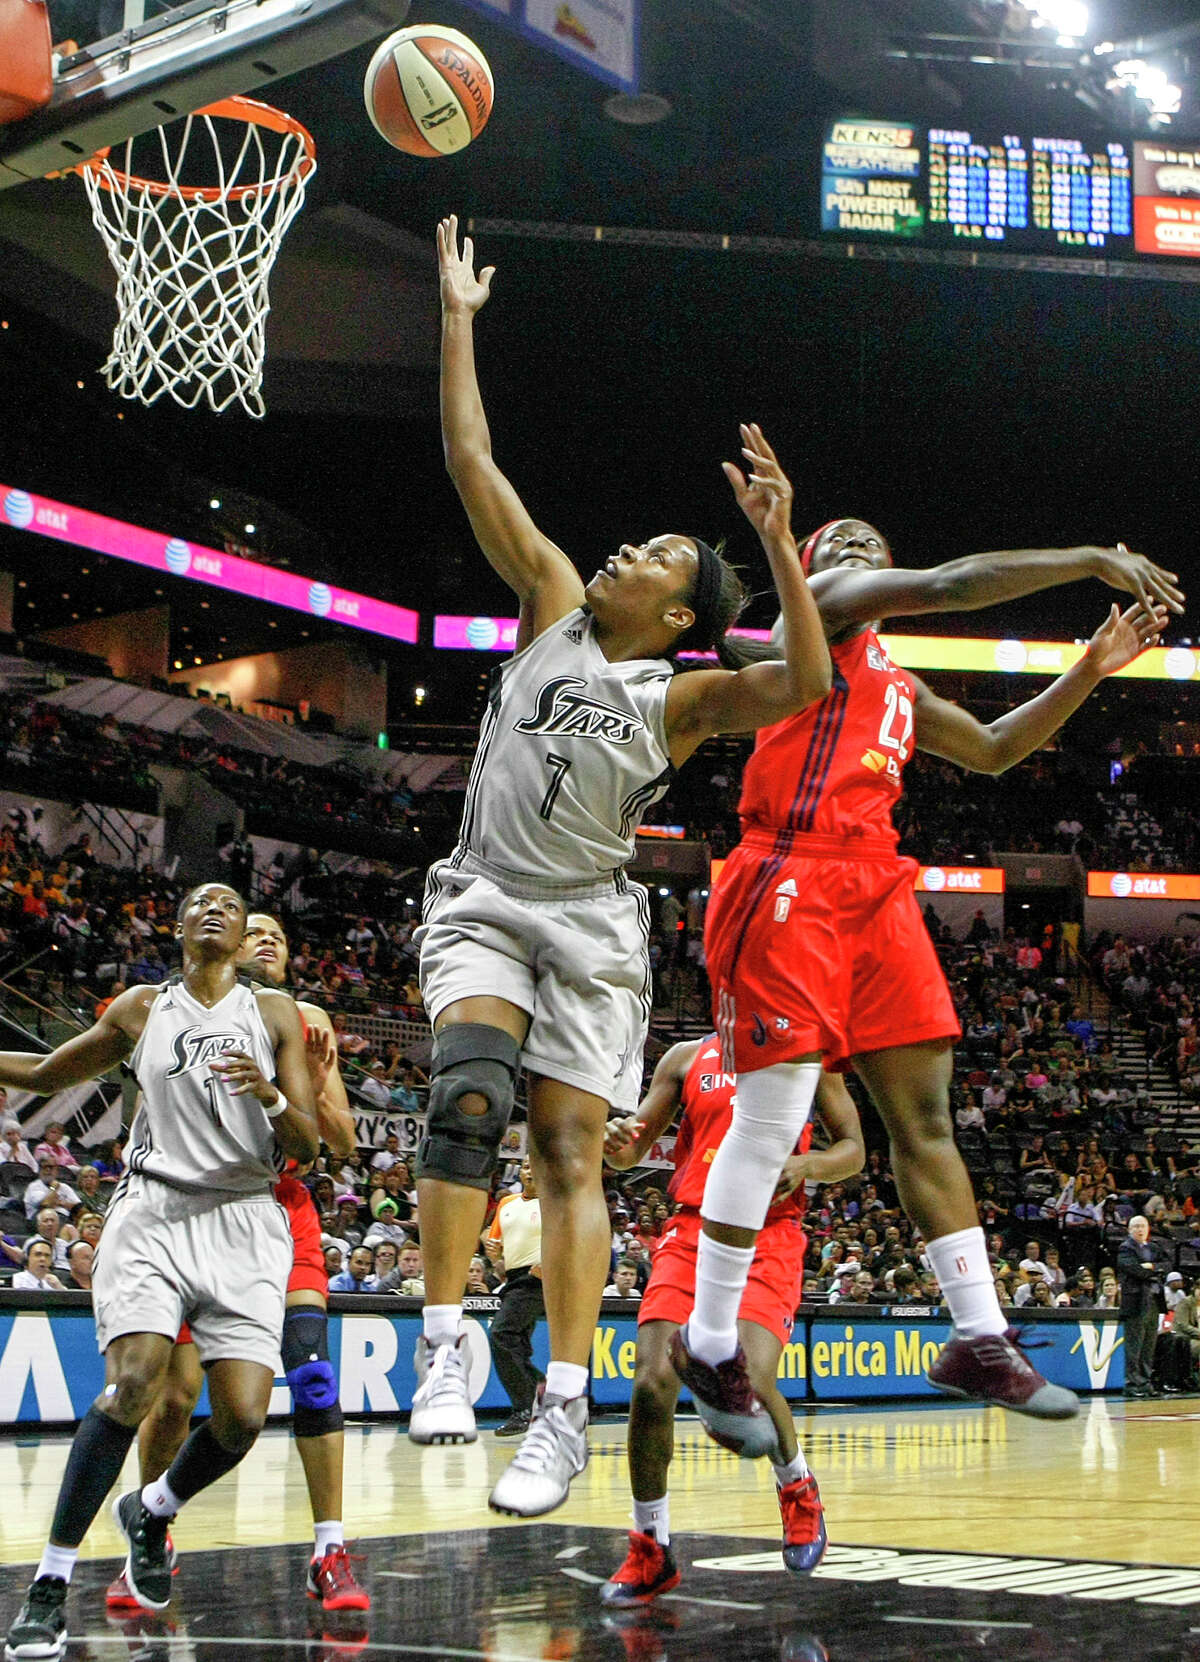 Jia Perkins of the Silver Stars (center) goes up for a layup during the first quarter of their game with the Washington Mystics at the AT&T Center on Friday, July 12, 2013. The Mystics beat the Silver Stars 83-73.MARVIN PFEIFFER/ mpfeiffer@express-news.net